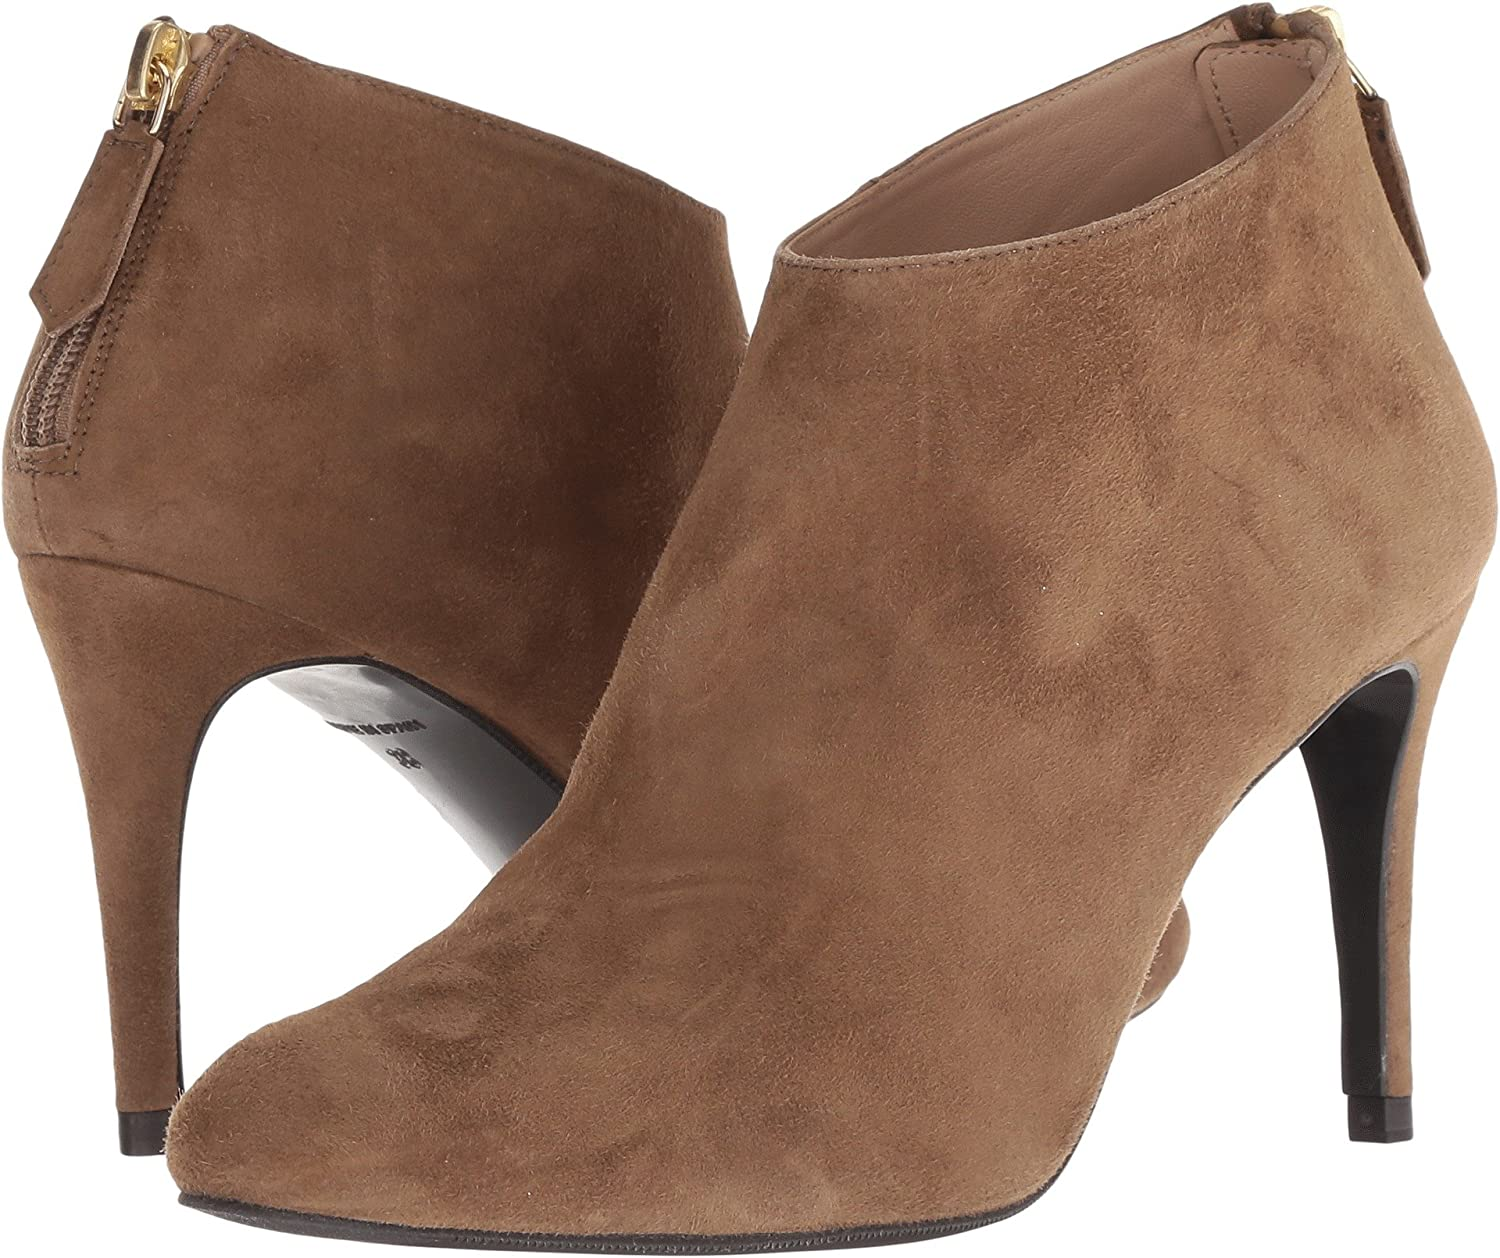 L.K. Bennett Women's Emily Ankle Boot B07B6754MN 39.5 M EU|Biscuit Suede